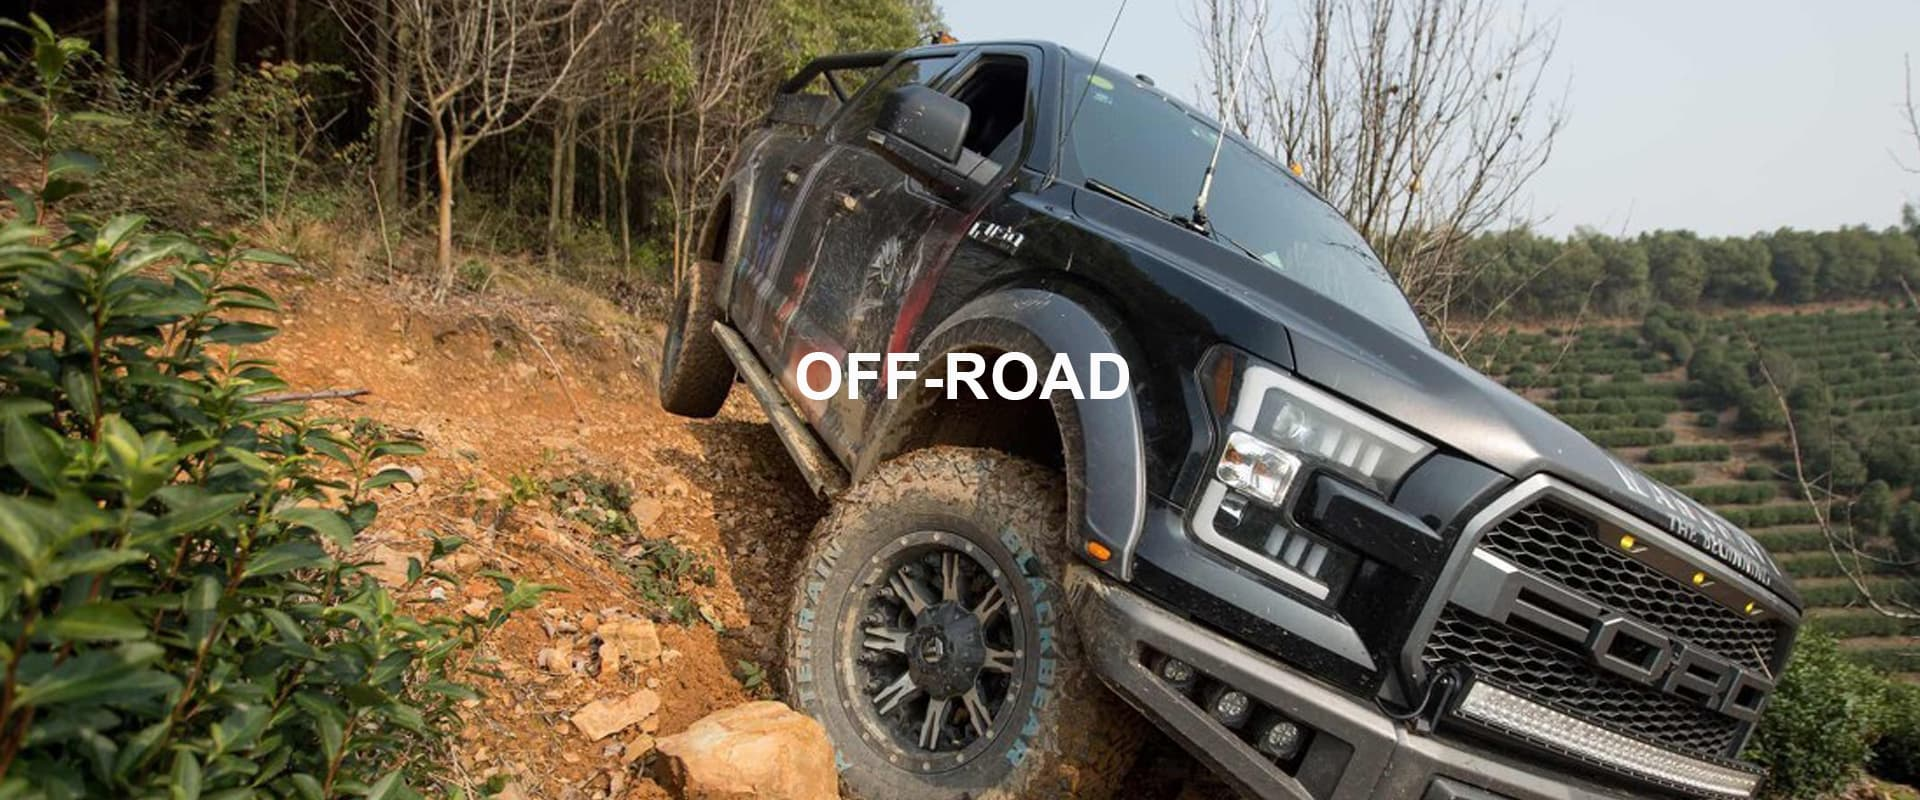 Retevis-solutions-industries-off-road-banner